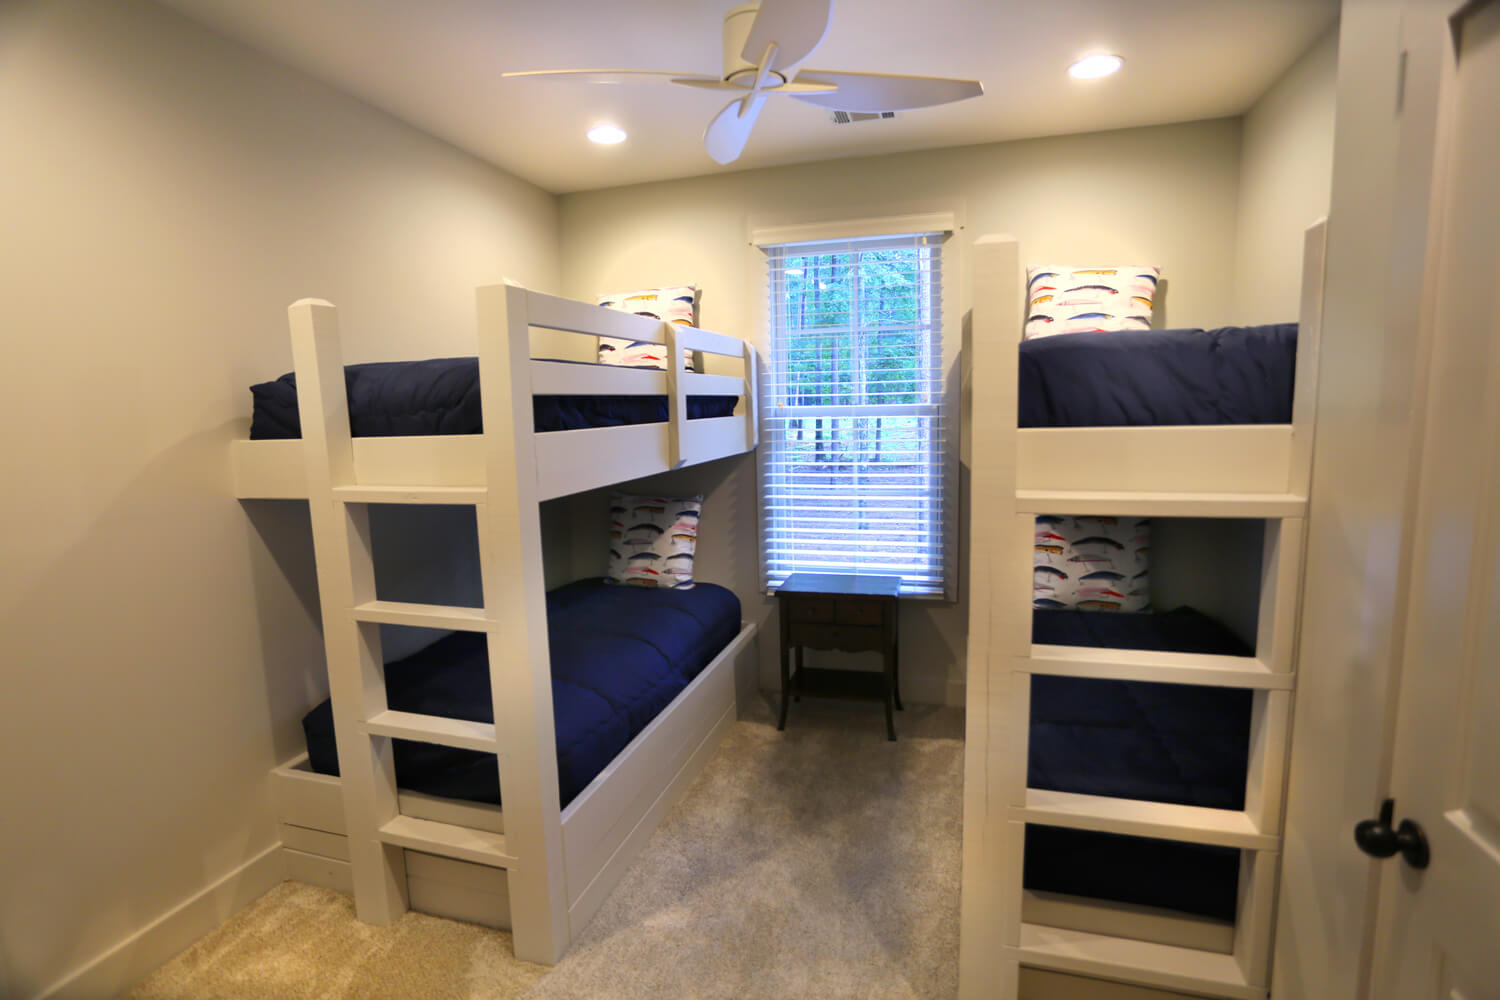 Lake Martin Cabin - Bunkbeds Upstairs - Designed by Foshee Architecture